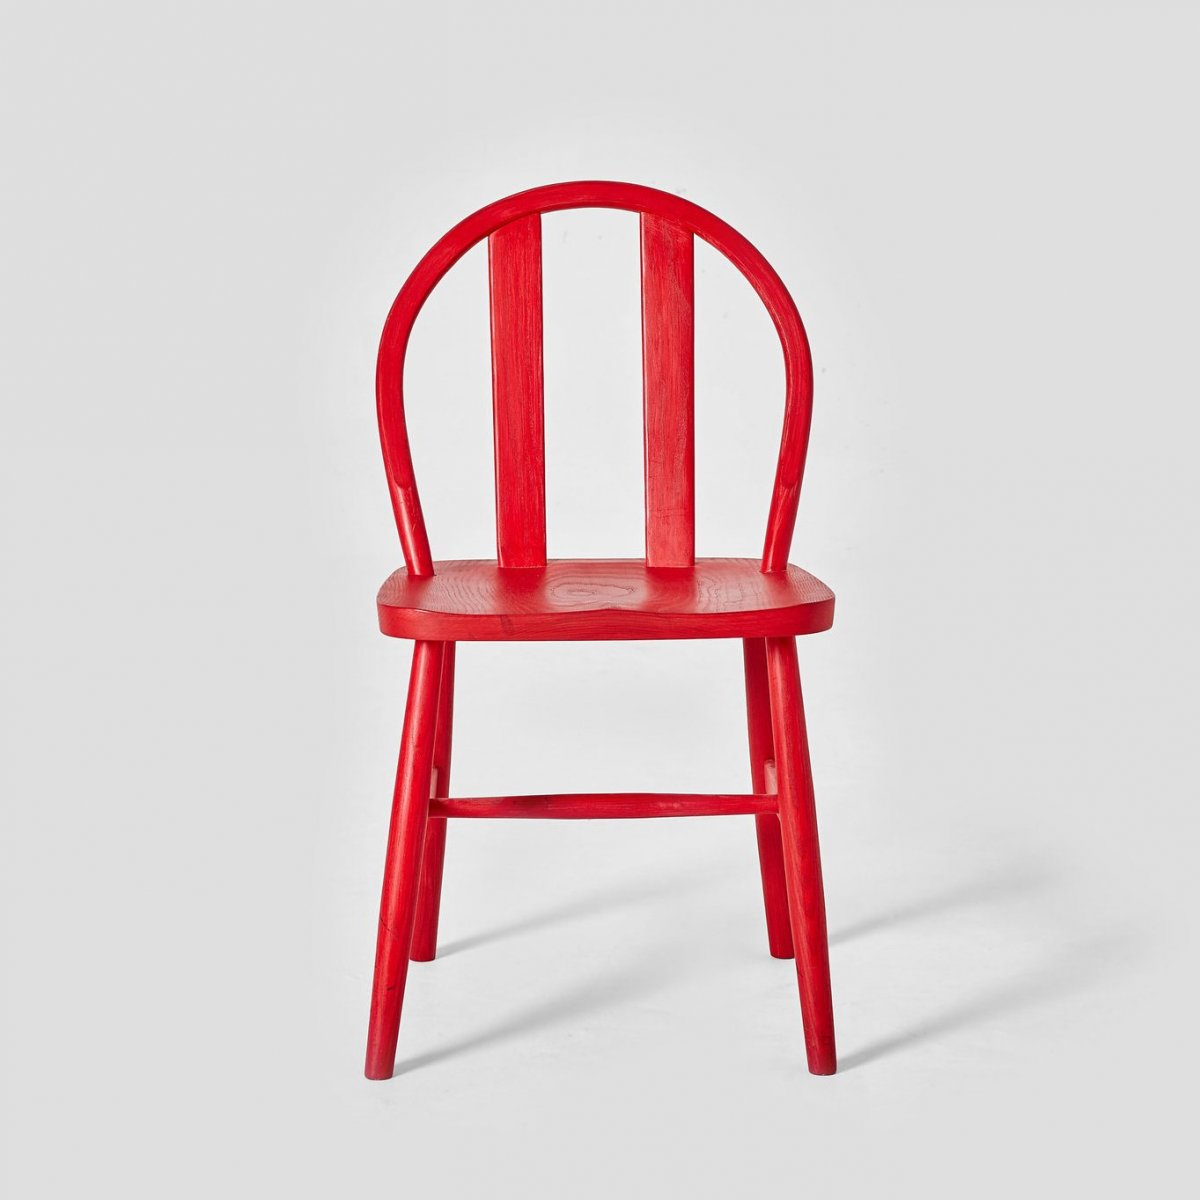 Bird Chair, red stained ash, front view.